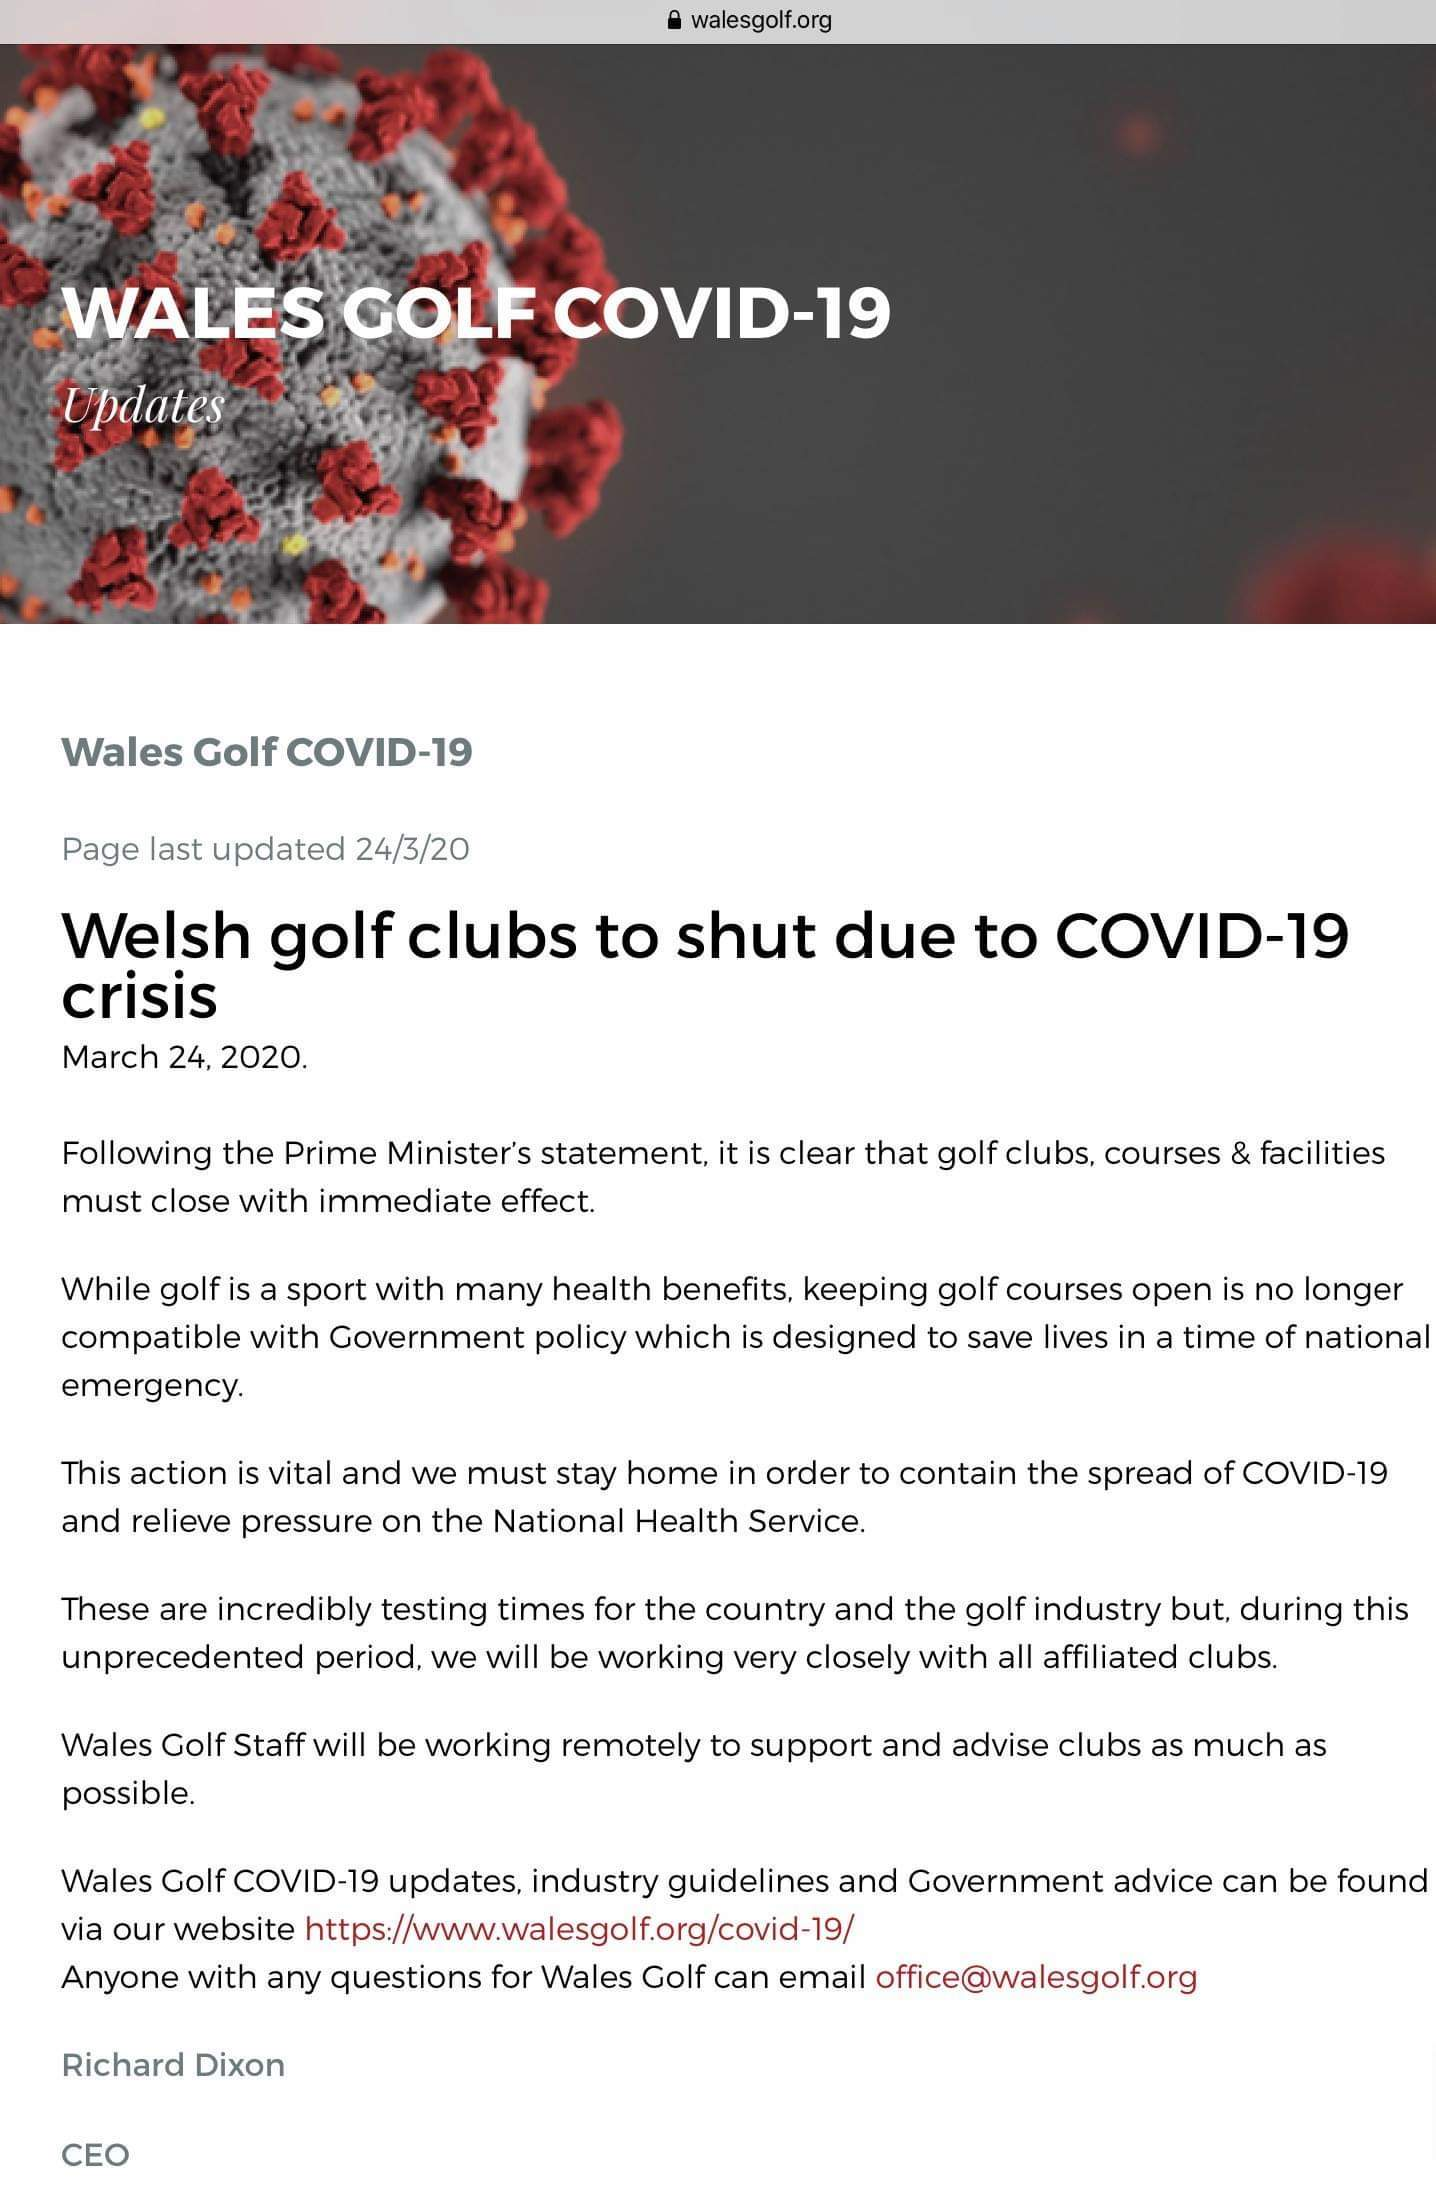 COURSE CLOSED - COVID-19 UPDATE 23/03/20